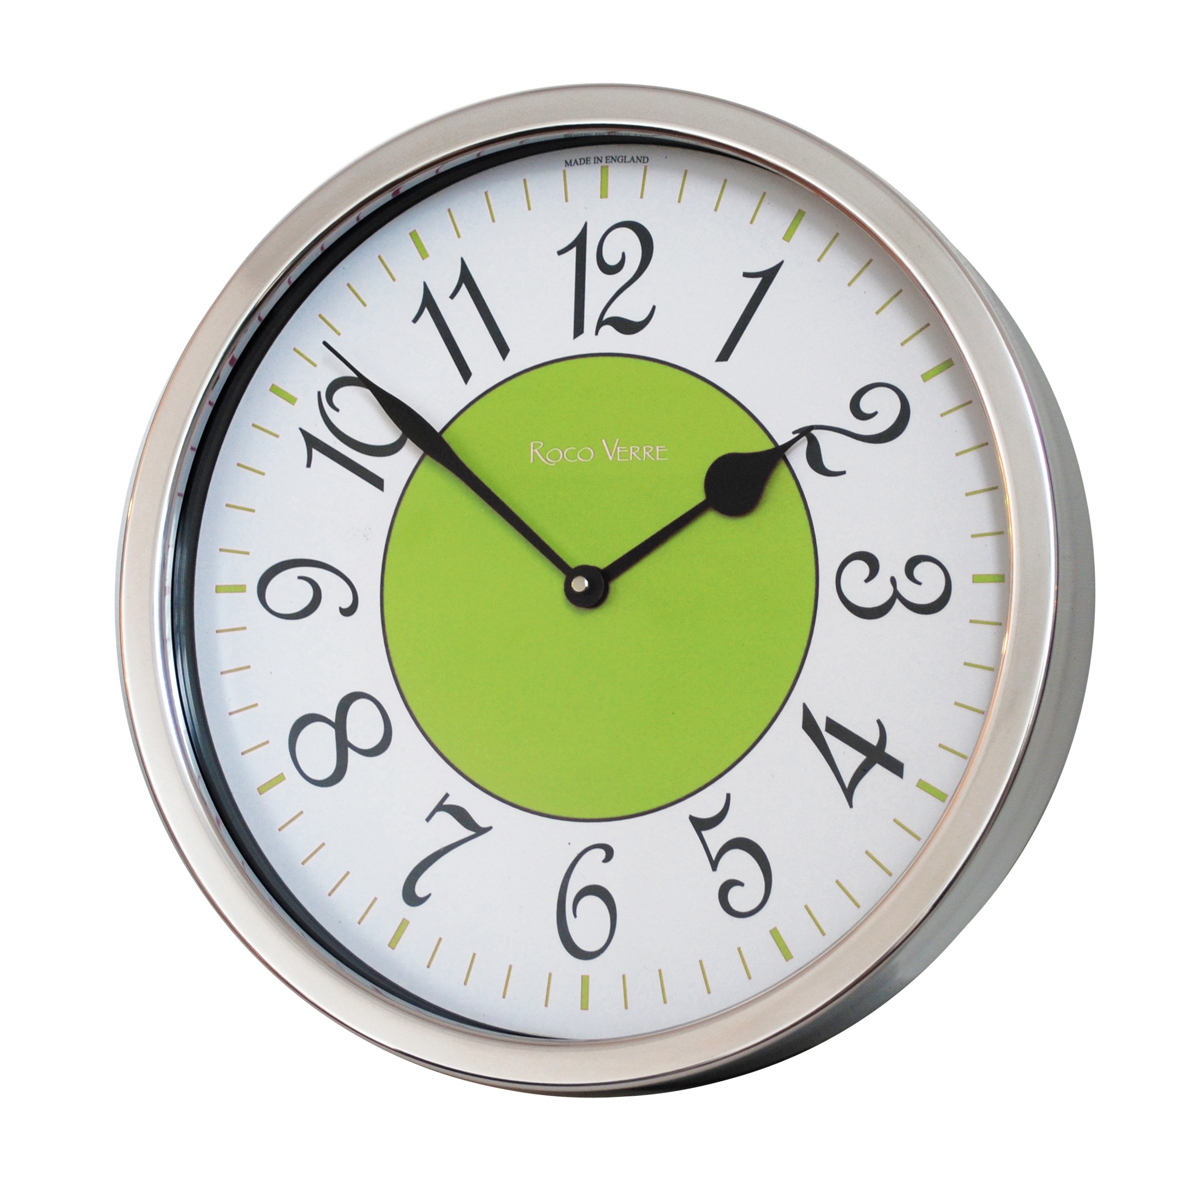 Roco Verre Modern Vintage French Clock Polished 35cm Diameter Lime